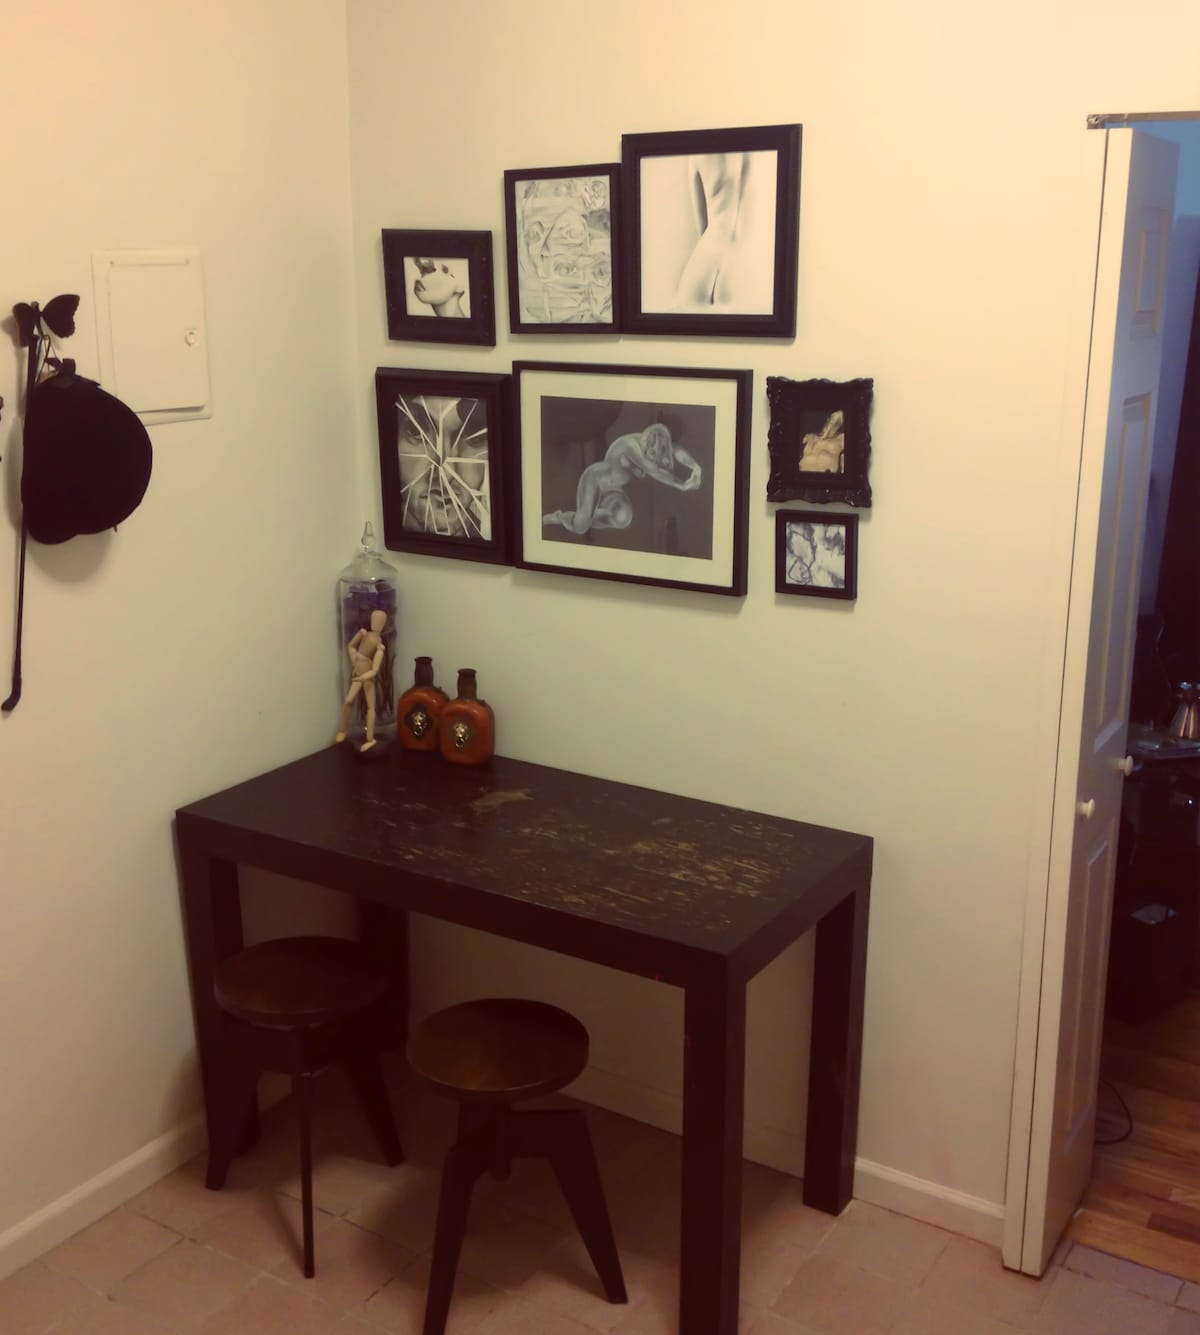 Dining table in kitchen.  Wall adorned w original art pieces.